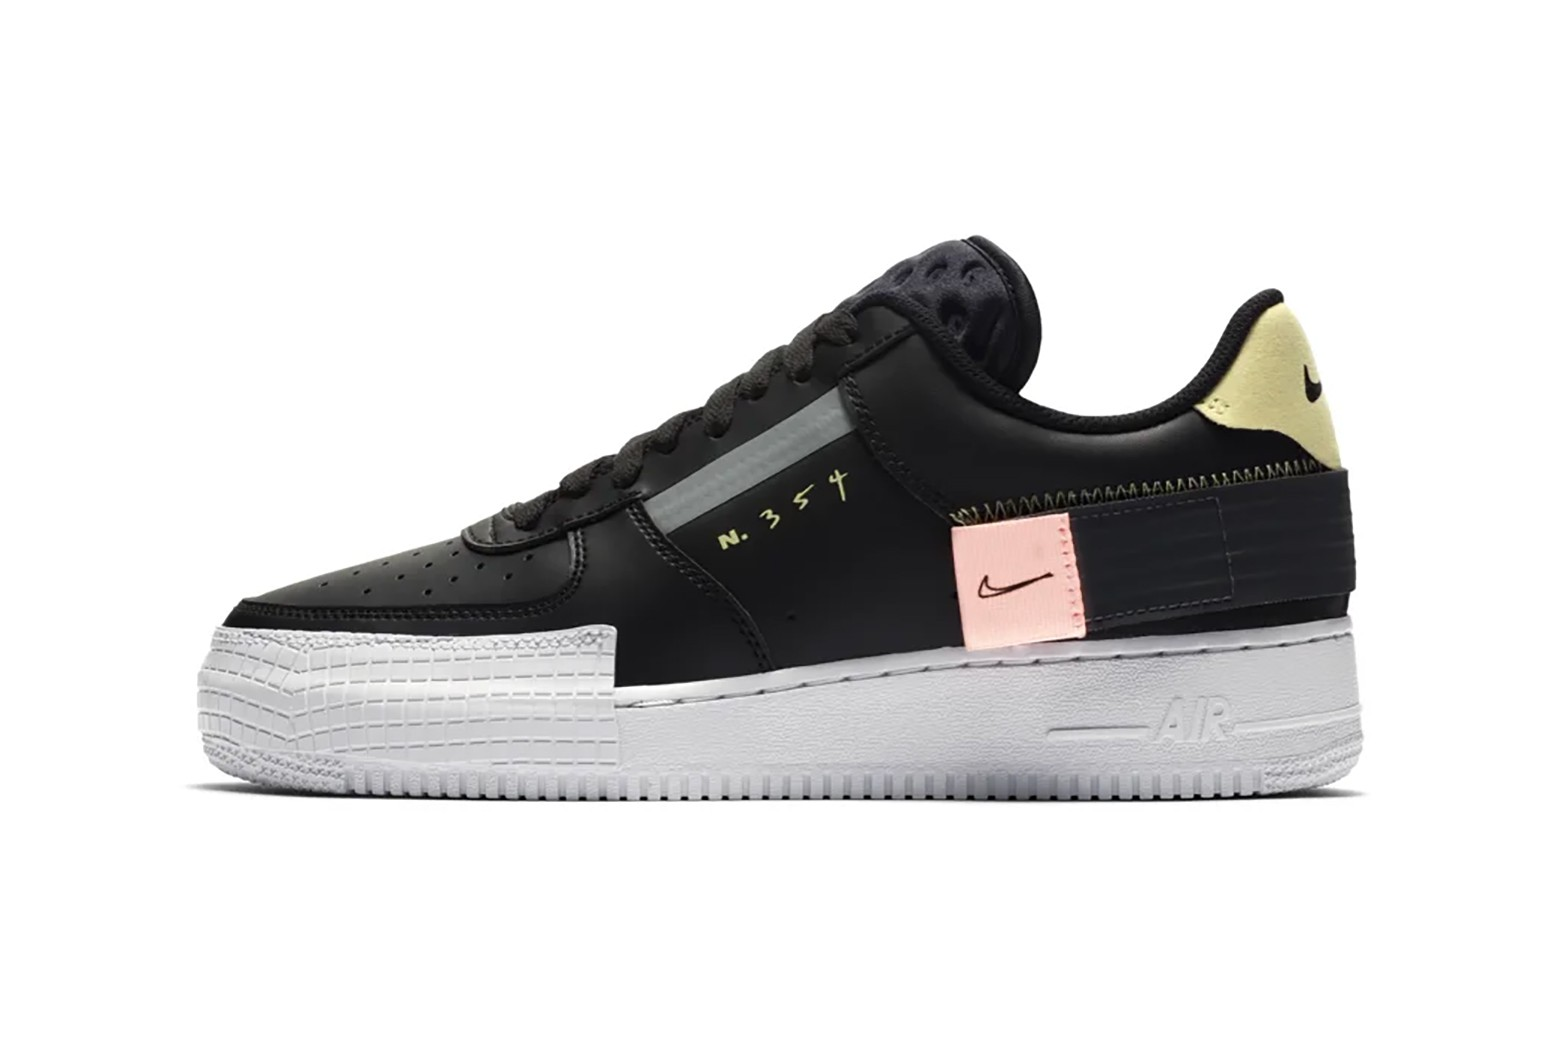 Nike's Air Force 1 and Drop-Type LX in